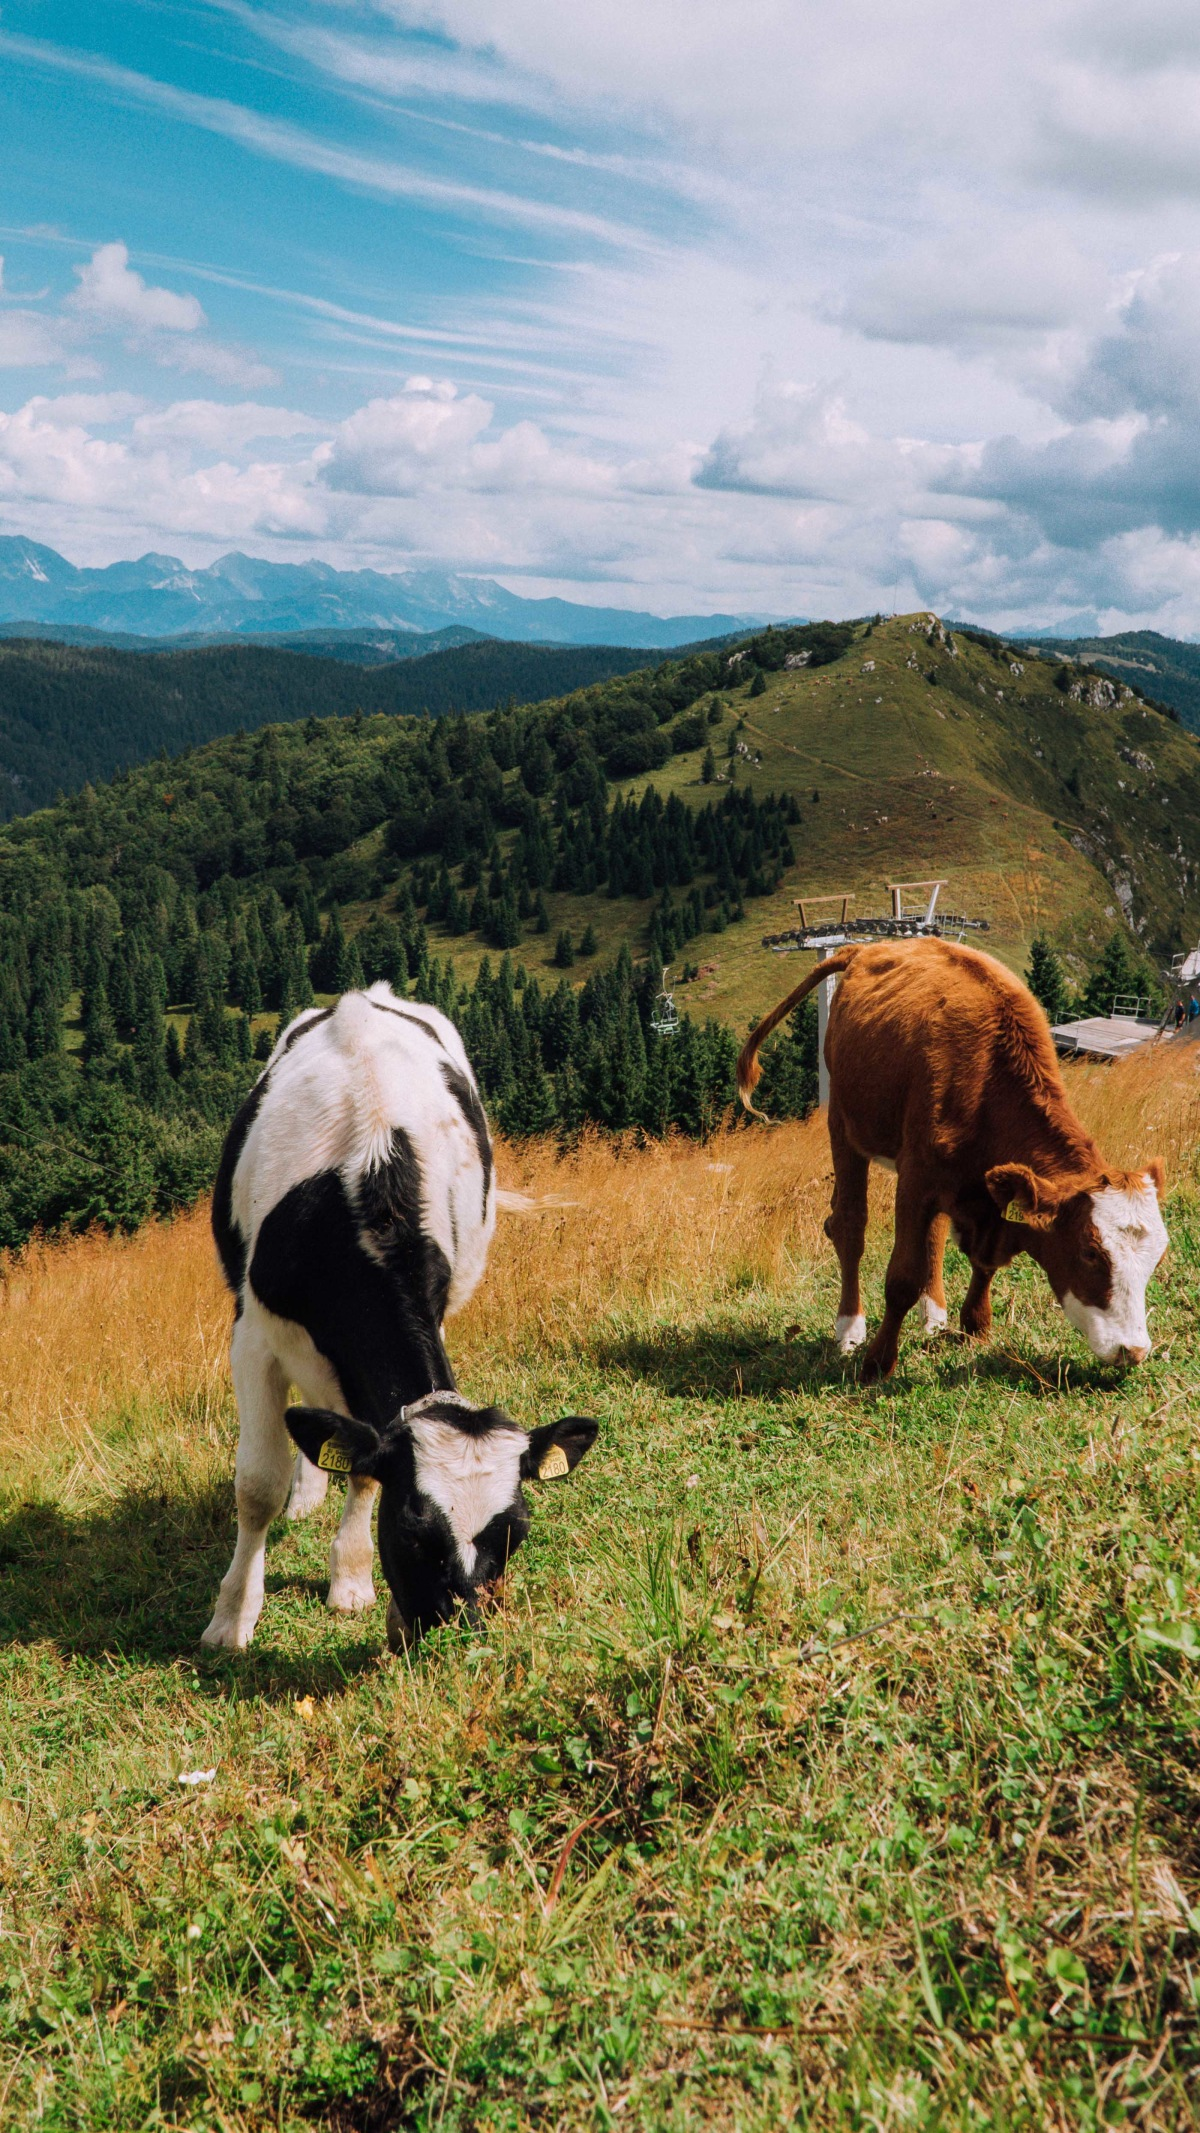 Meeting friendly cows along the way too